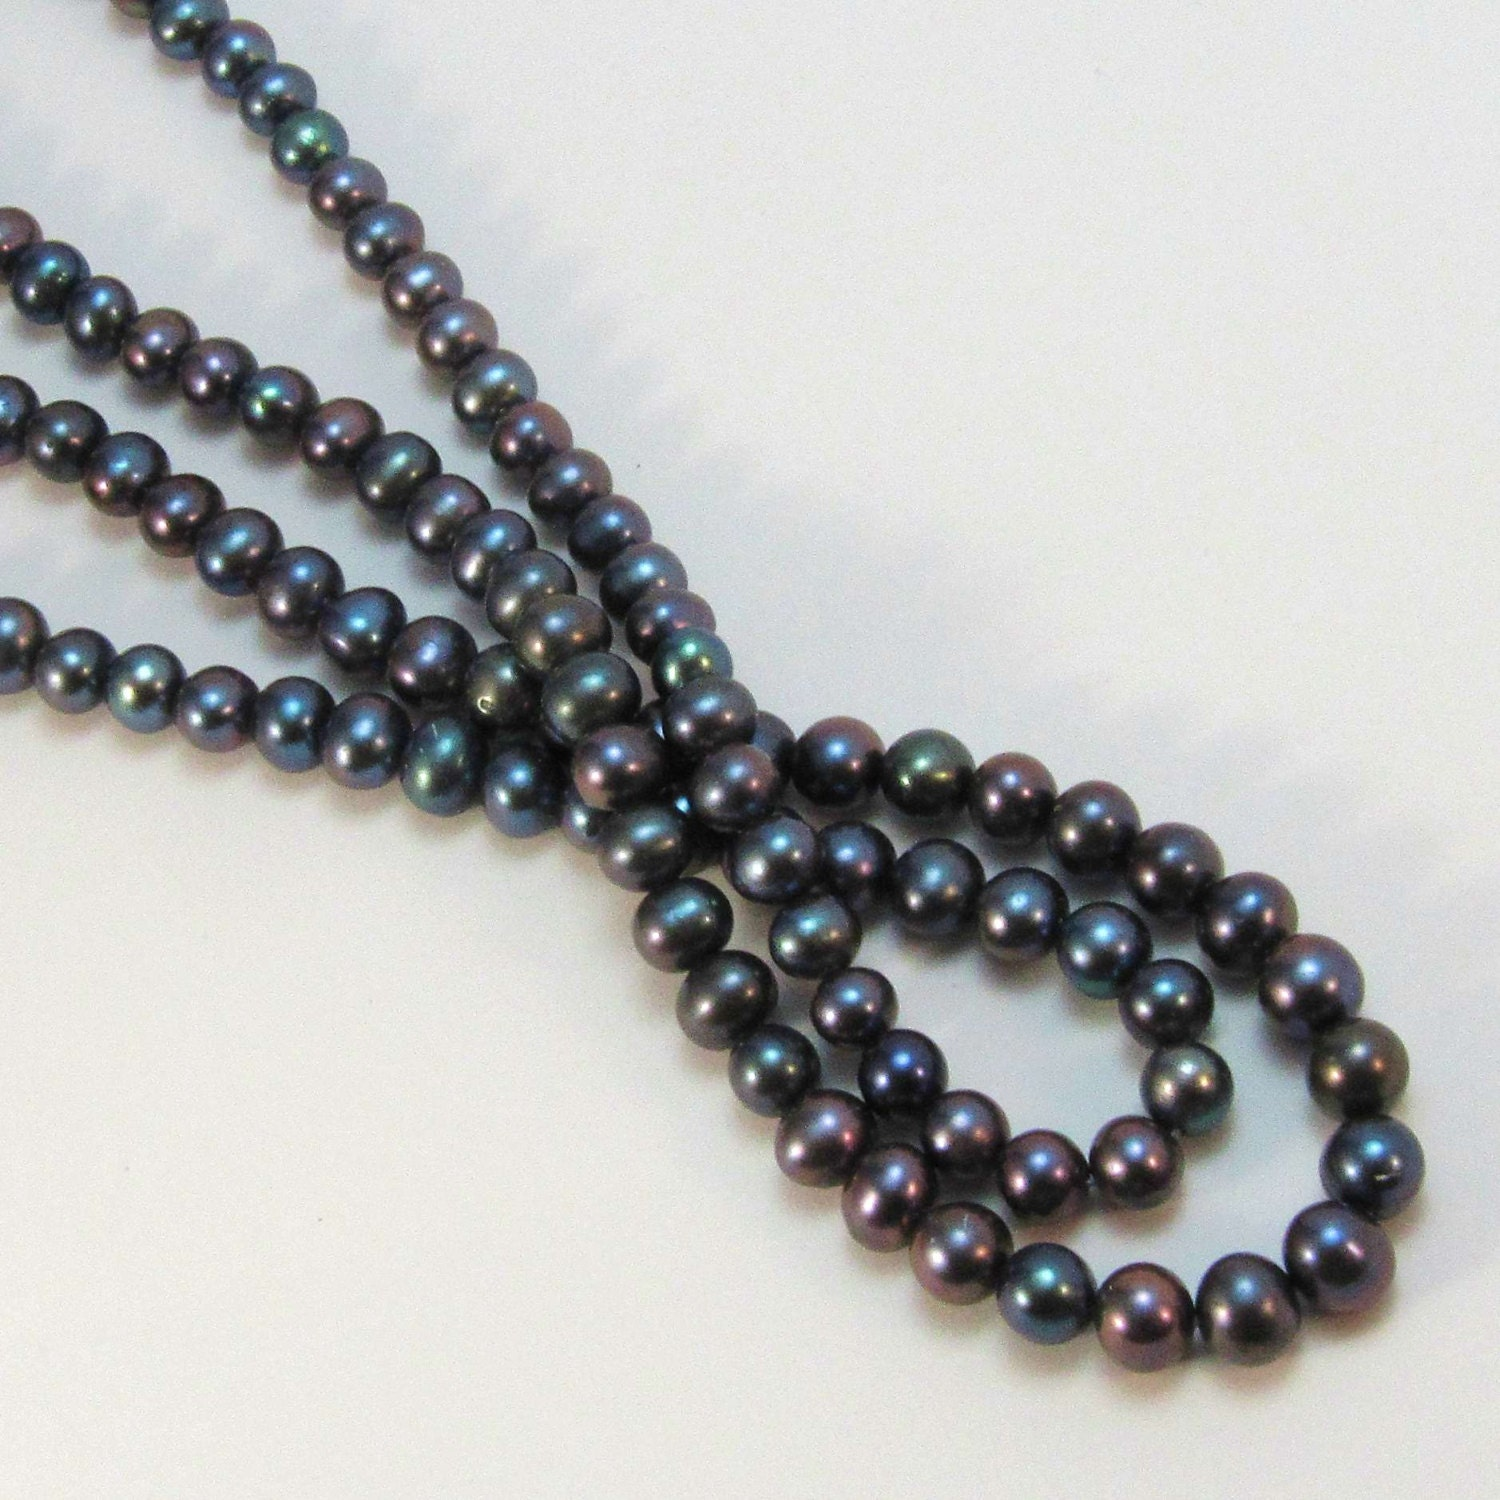 Black Peacock 8mm Pearls Freshwater Cultured Pearl Beads